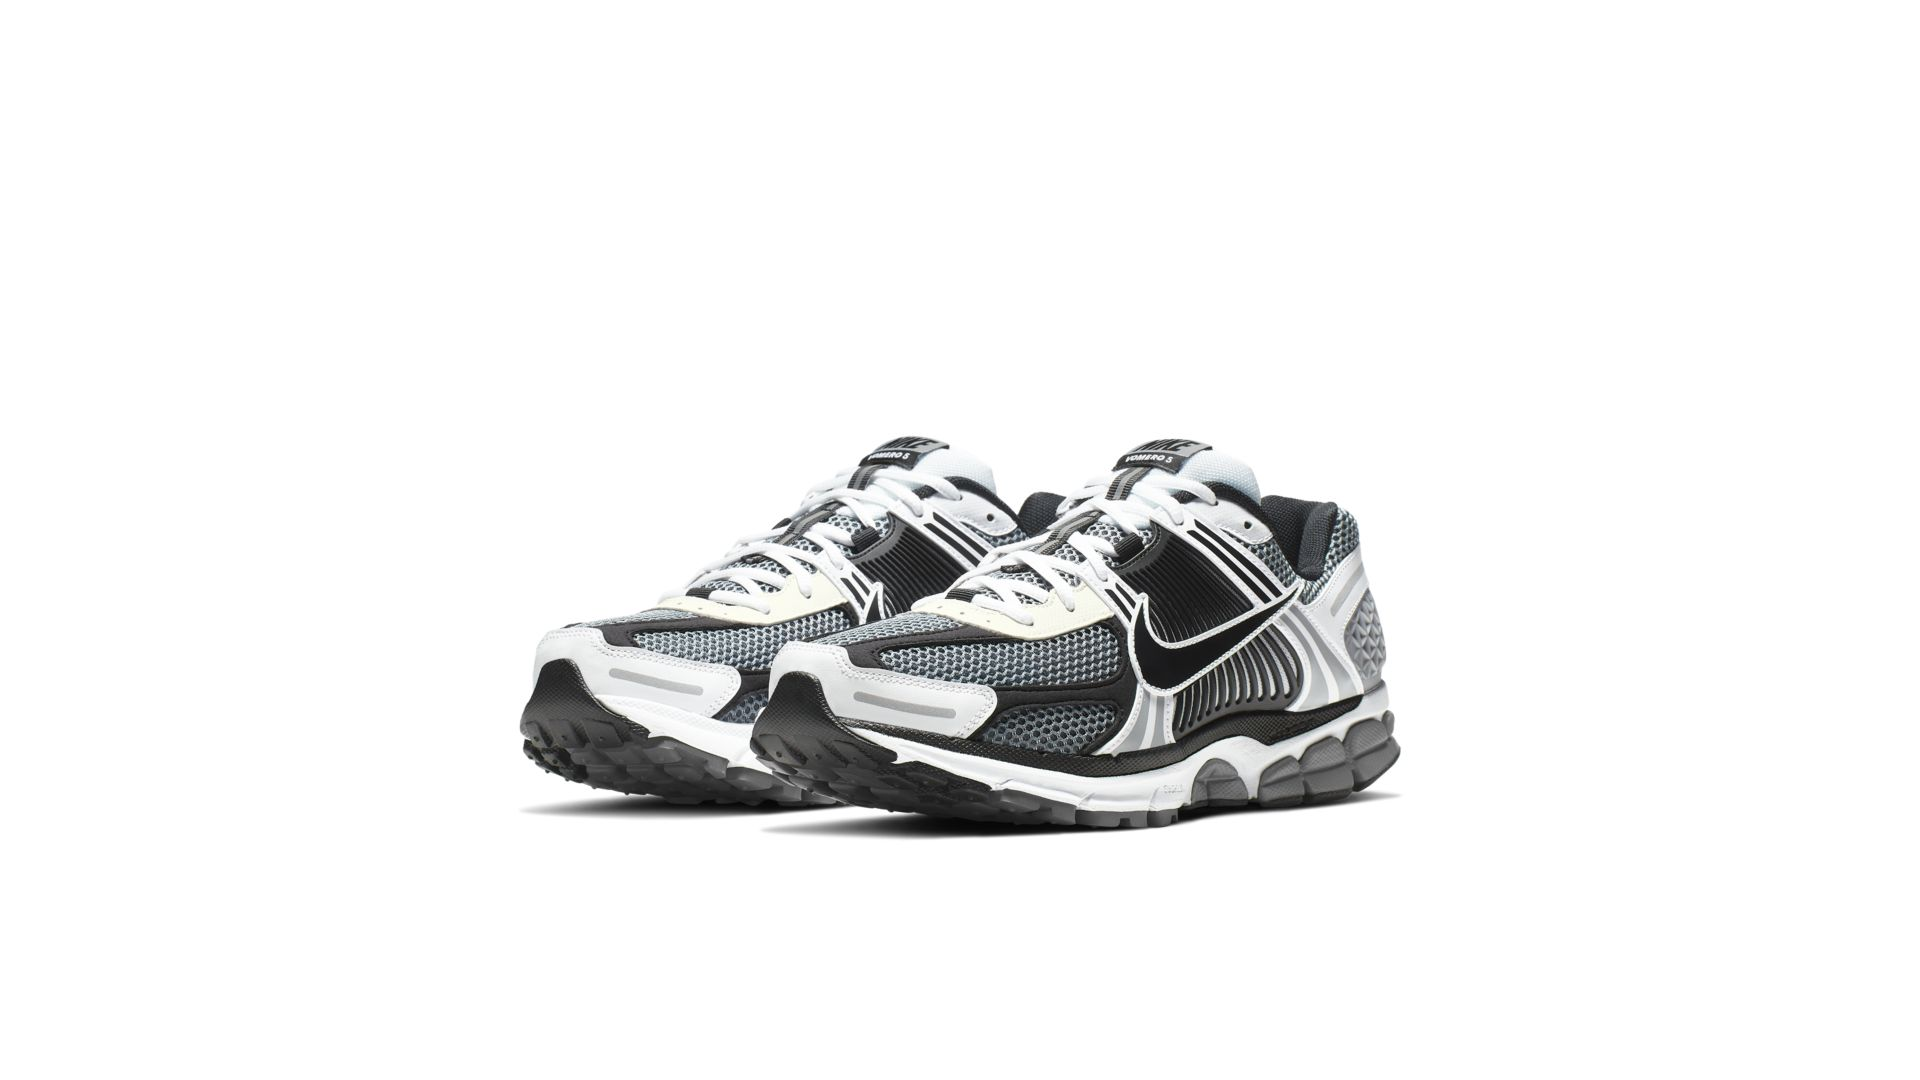 Nike Zoom Vemero 5 SE SP 'Dark Grey' (CI1694-001)